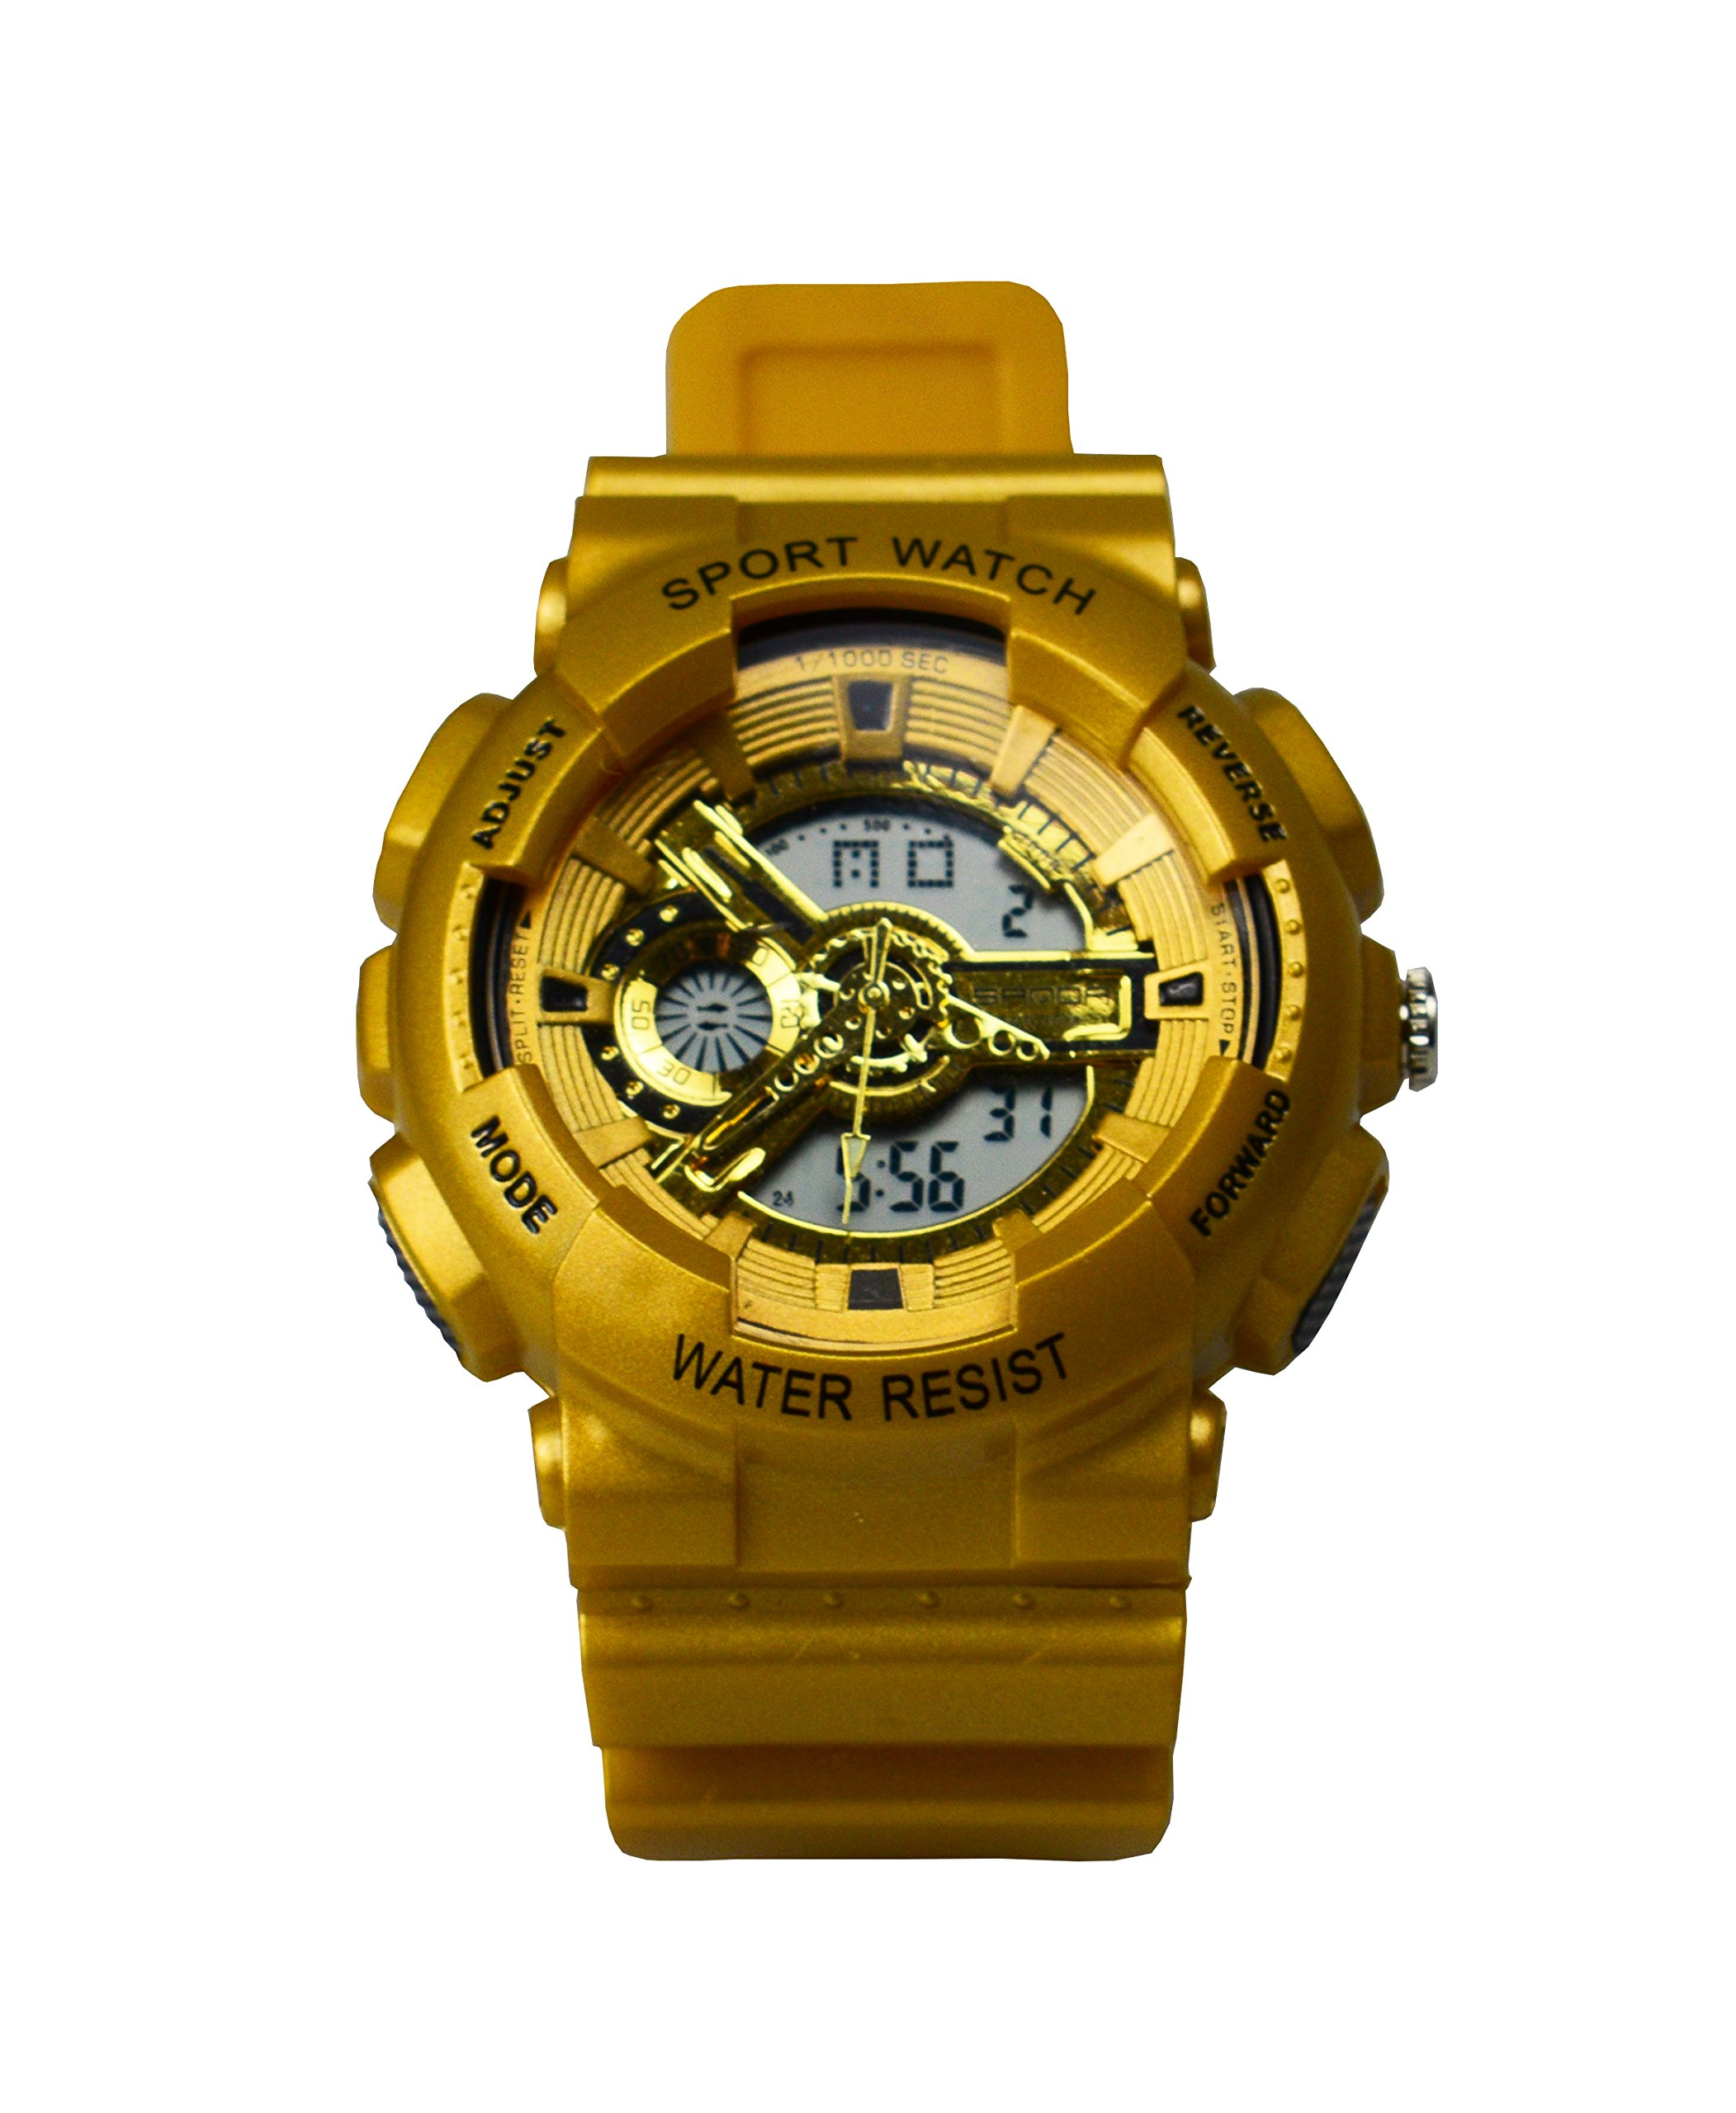 Juniors Boys Girls (Above 7 Years Old) 5ATM Military Digital Unusual Analog Quartz Dual Time Watches,Stopwatch Chronograph Alarm , Chronograph ,EL backlight,Chime Gold